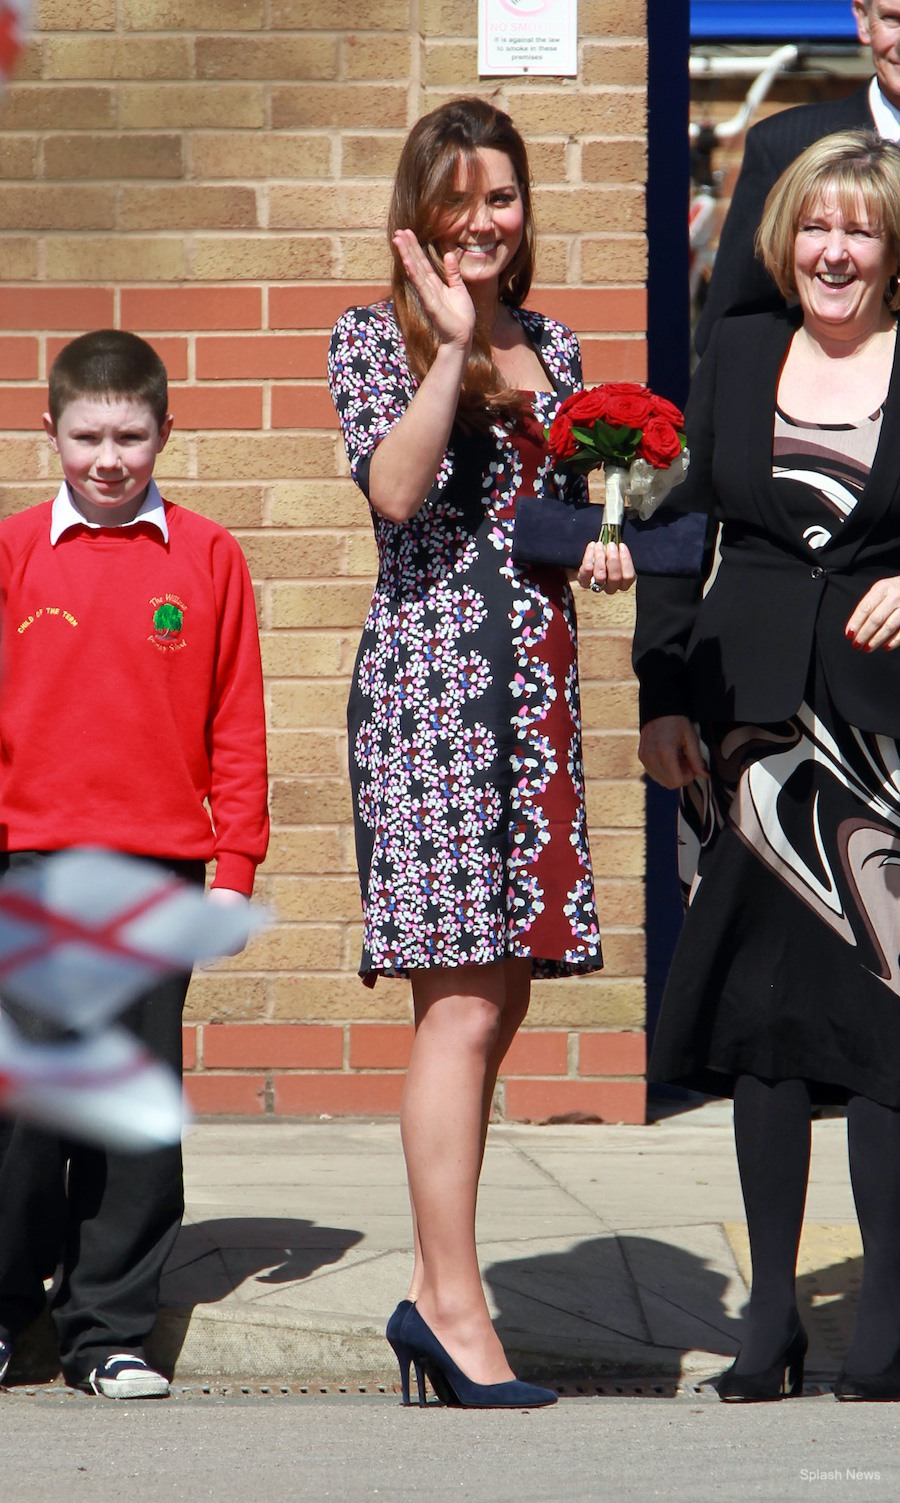 Pregnant Kate Middleton visits Manchester in 2013. The Duchess wears an Erdem dress